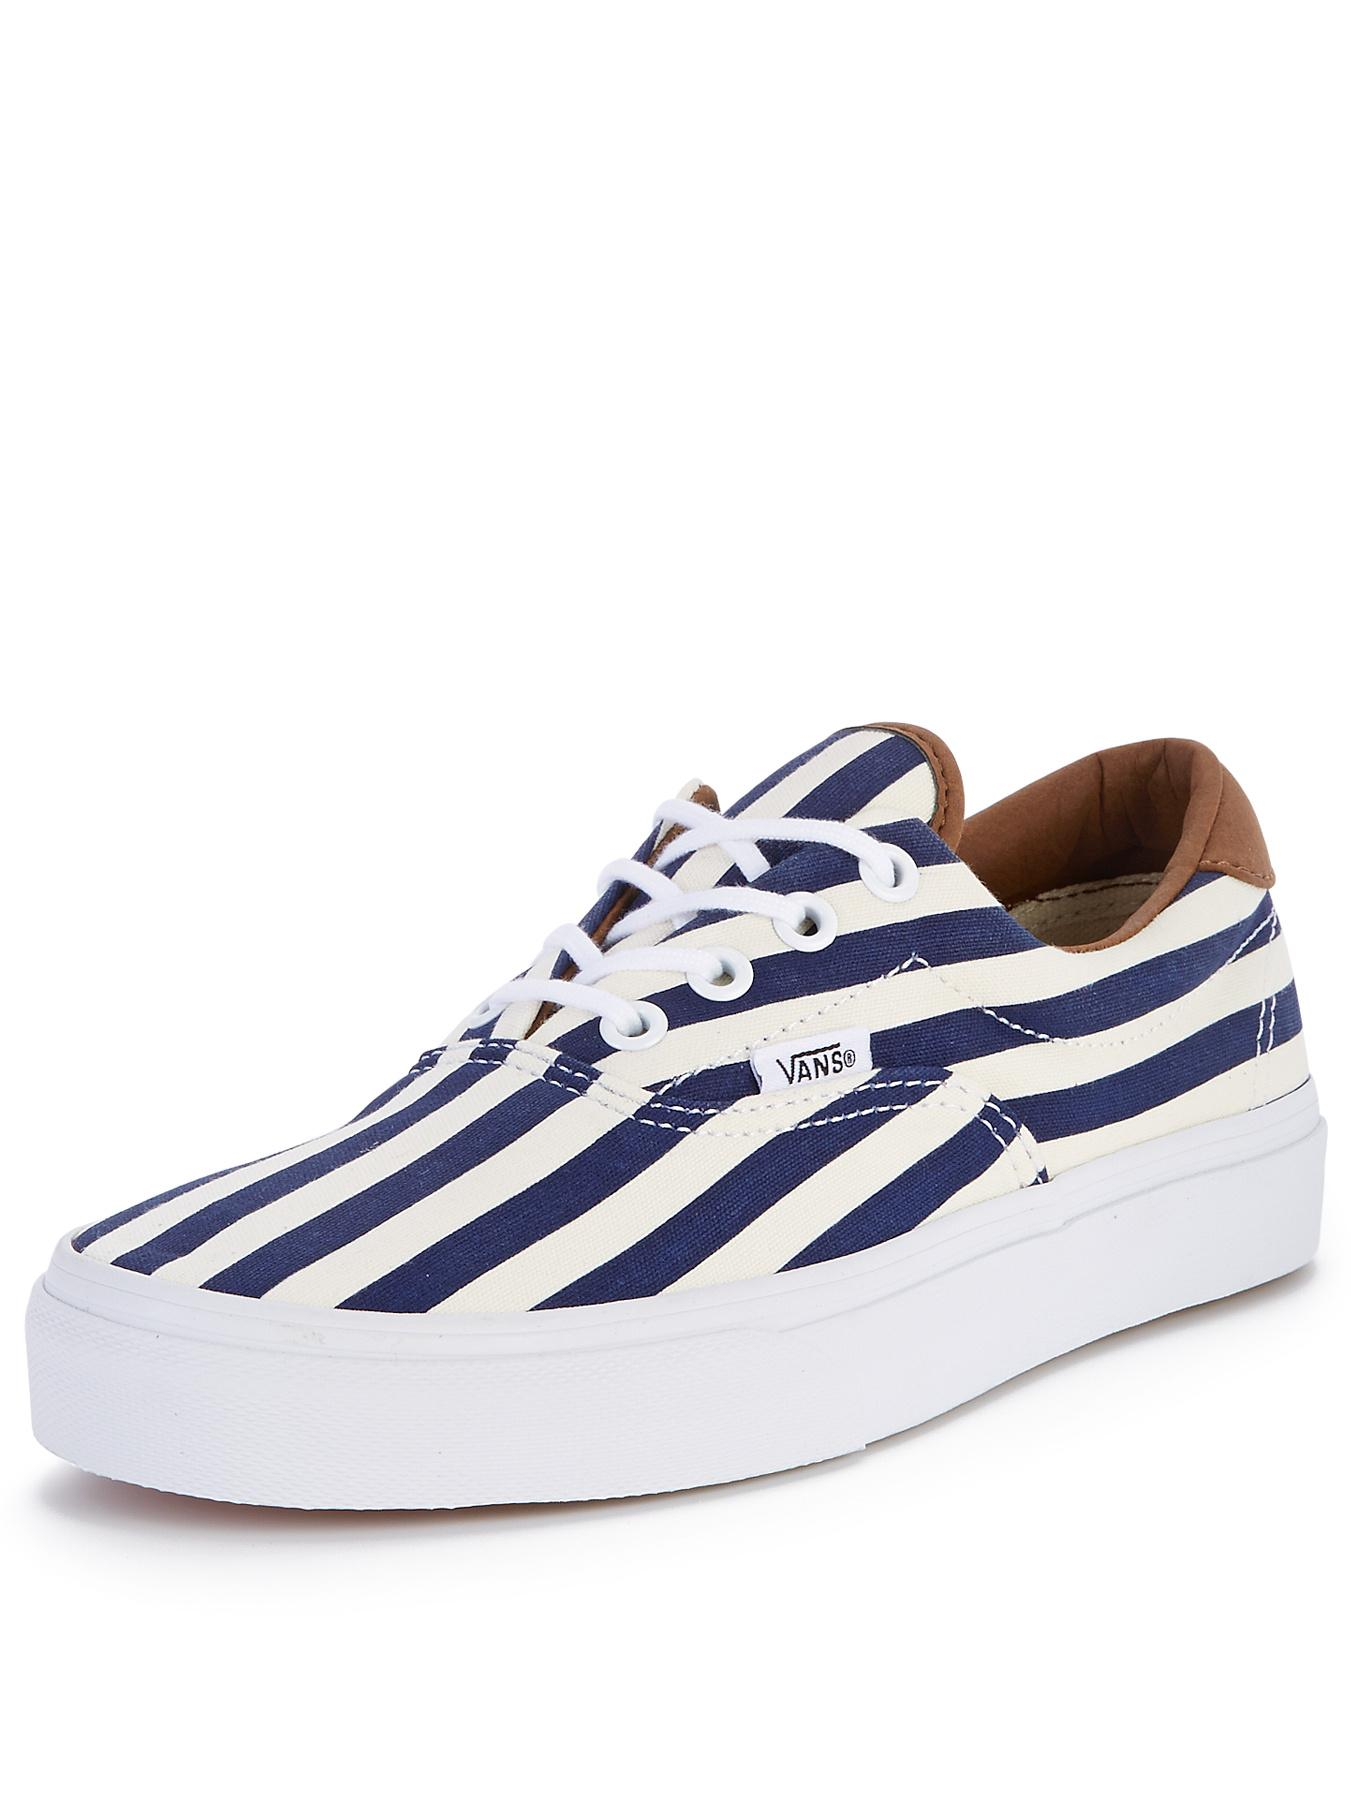 Vans Era 59 Stripes Plimsolls - Blue, Blue